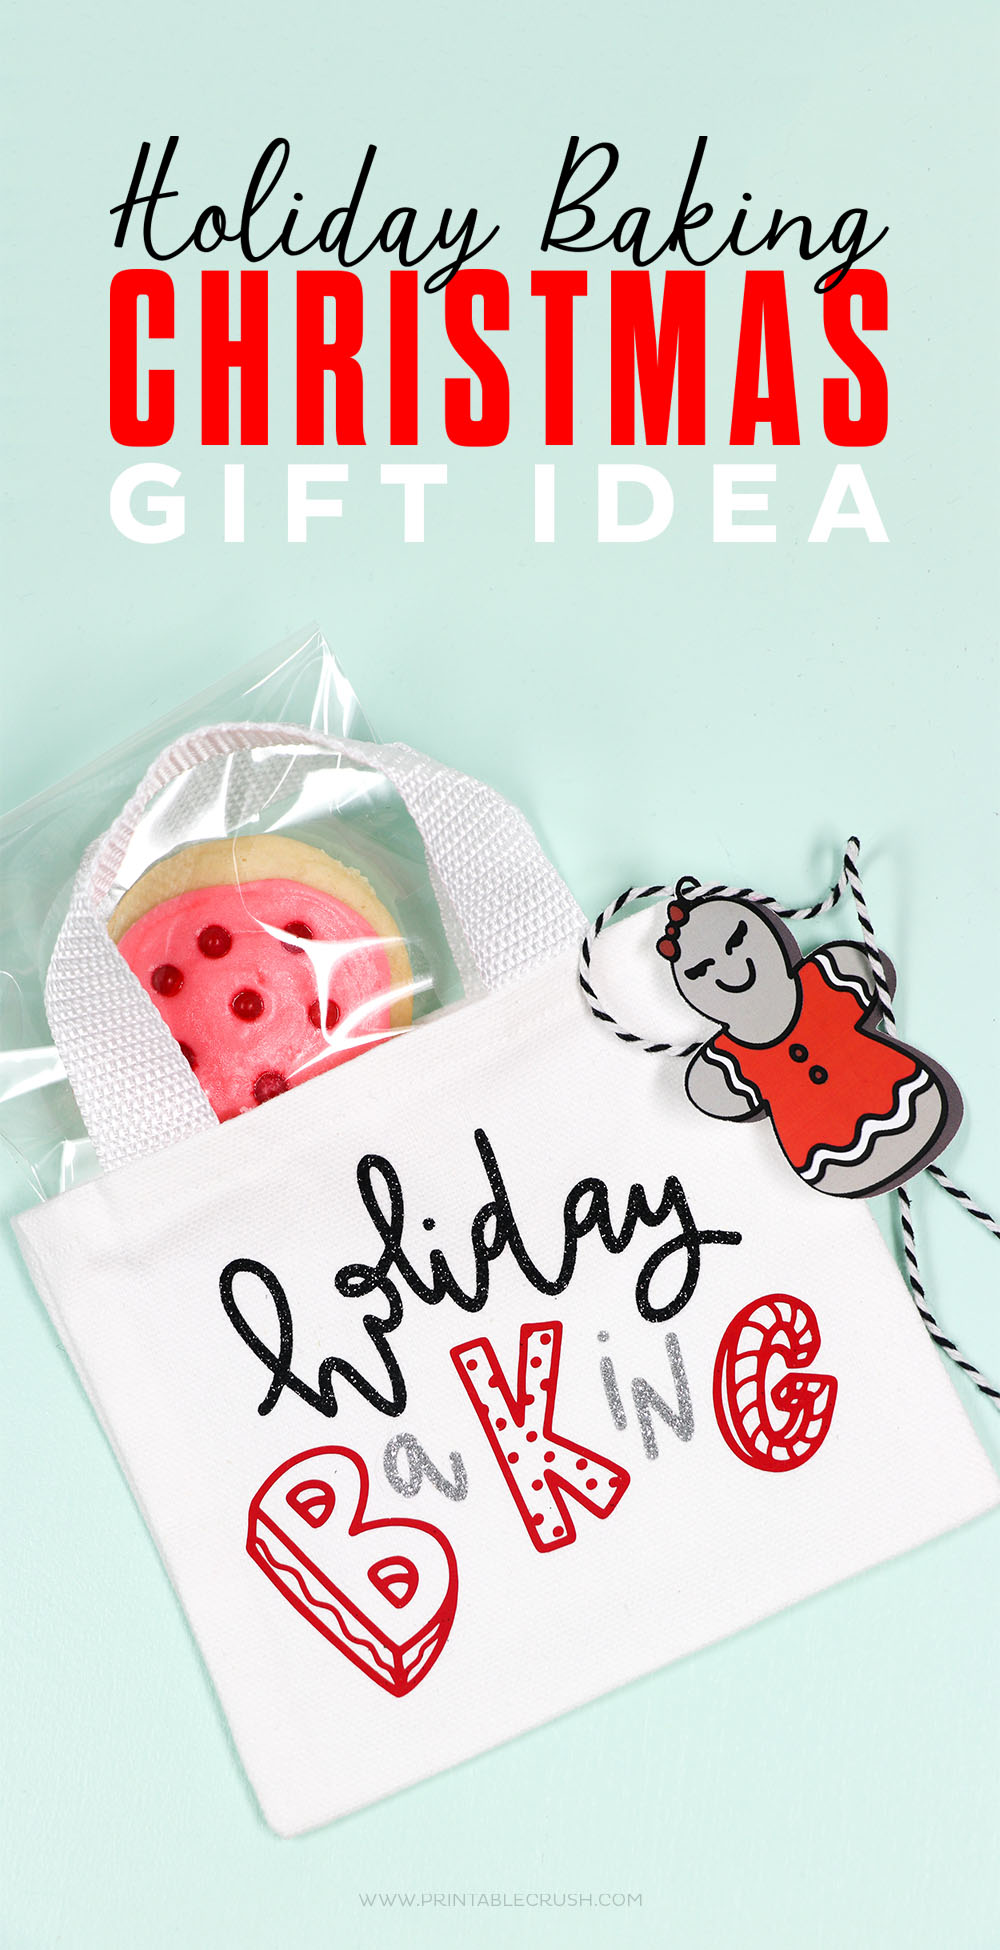 These Christmas Cookie Gift Bags are too cute and so easy to make with the Cricut EasyPress 2!